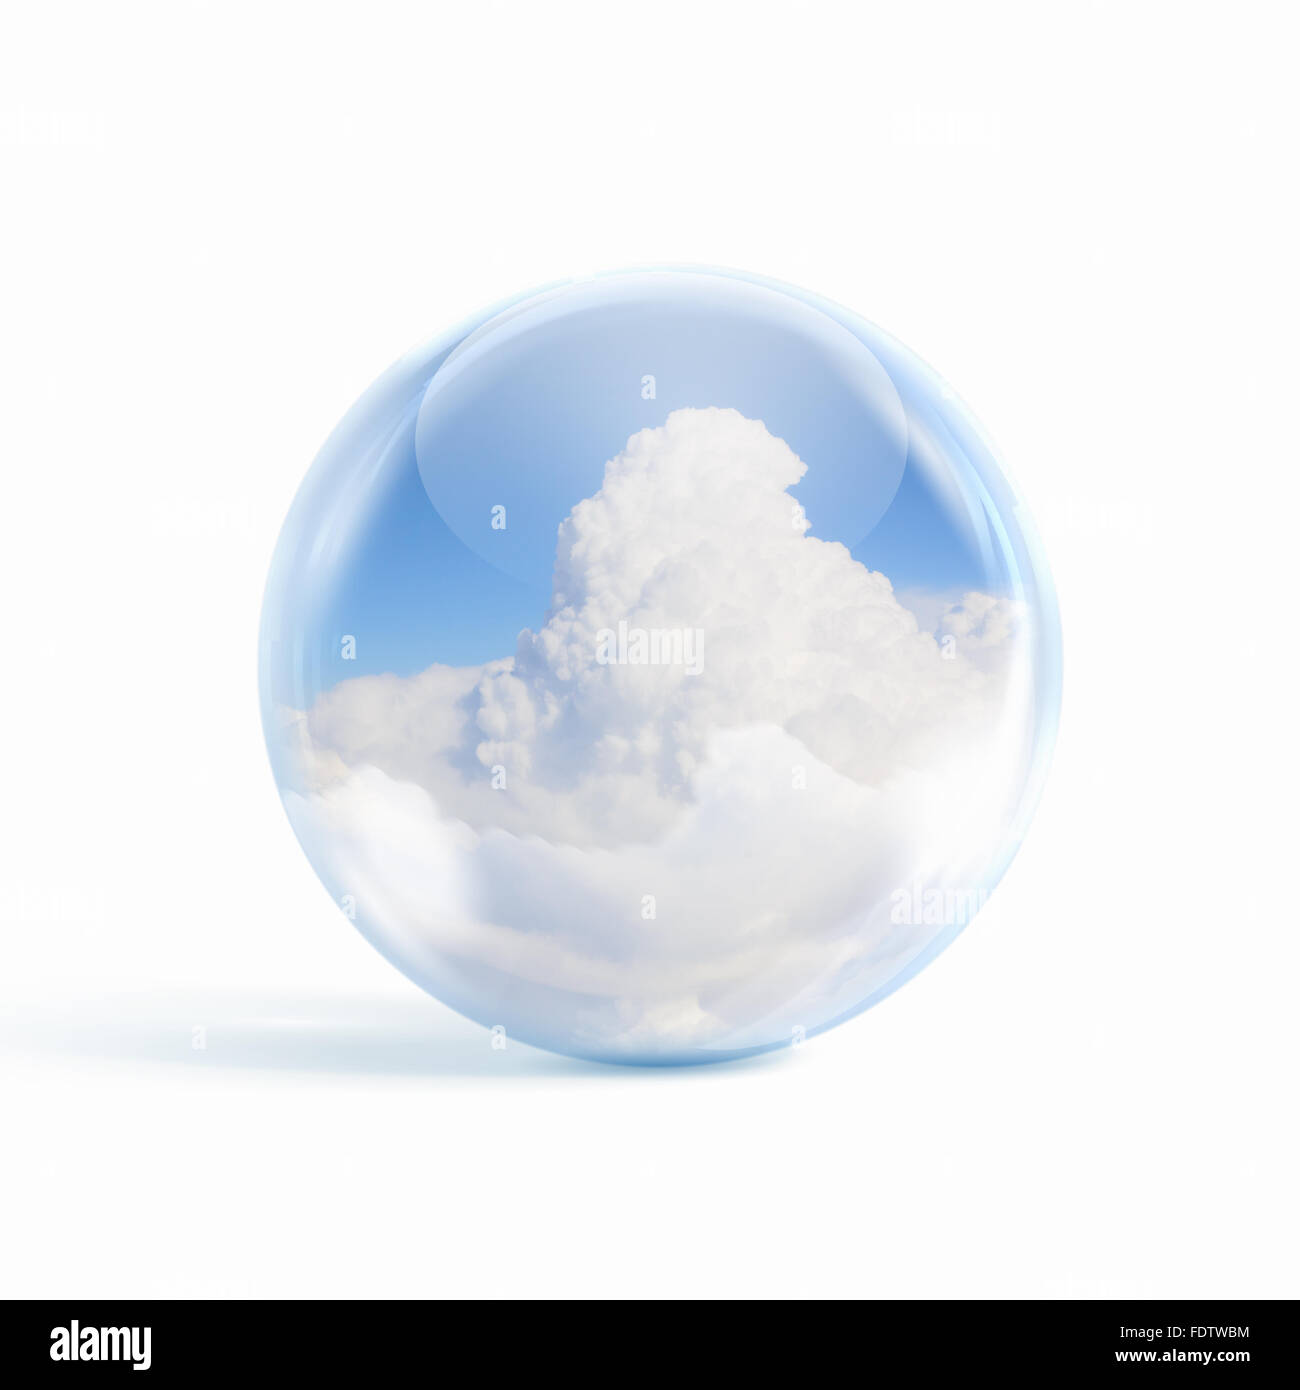 White clouds in blue sky inside a glass sphere - Stock Image